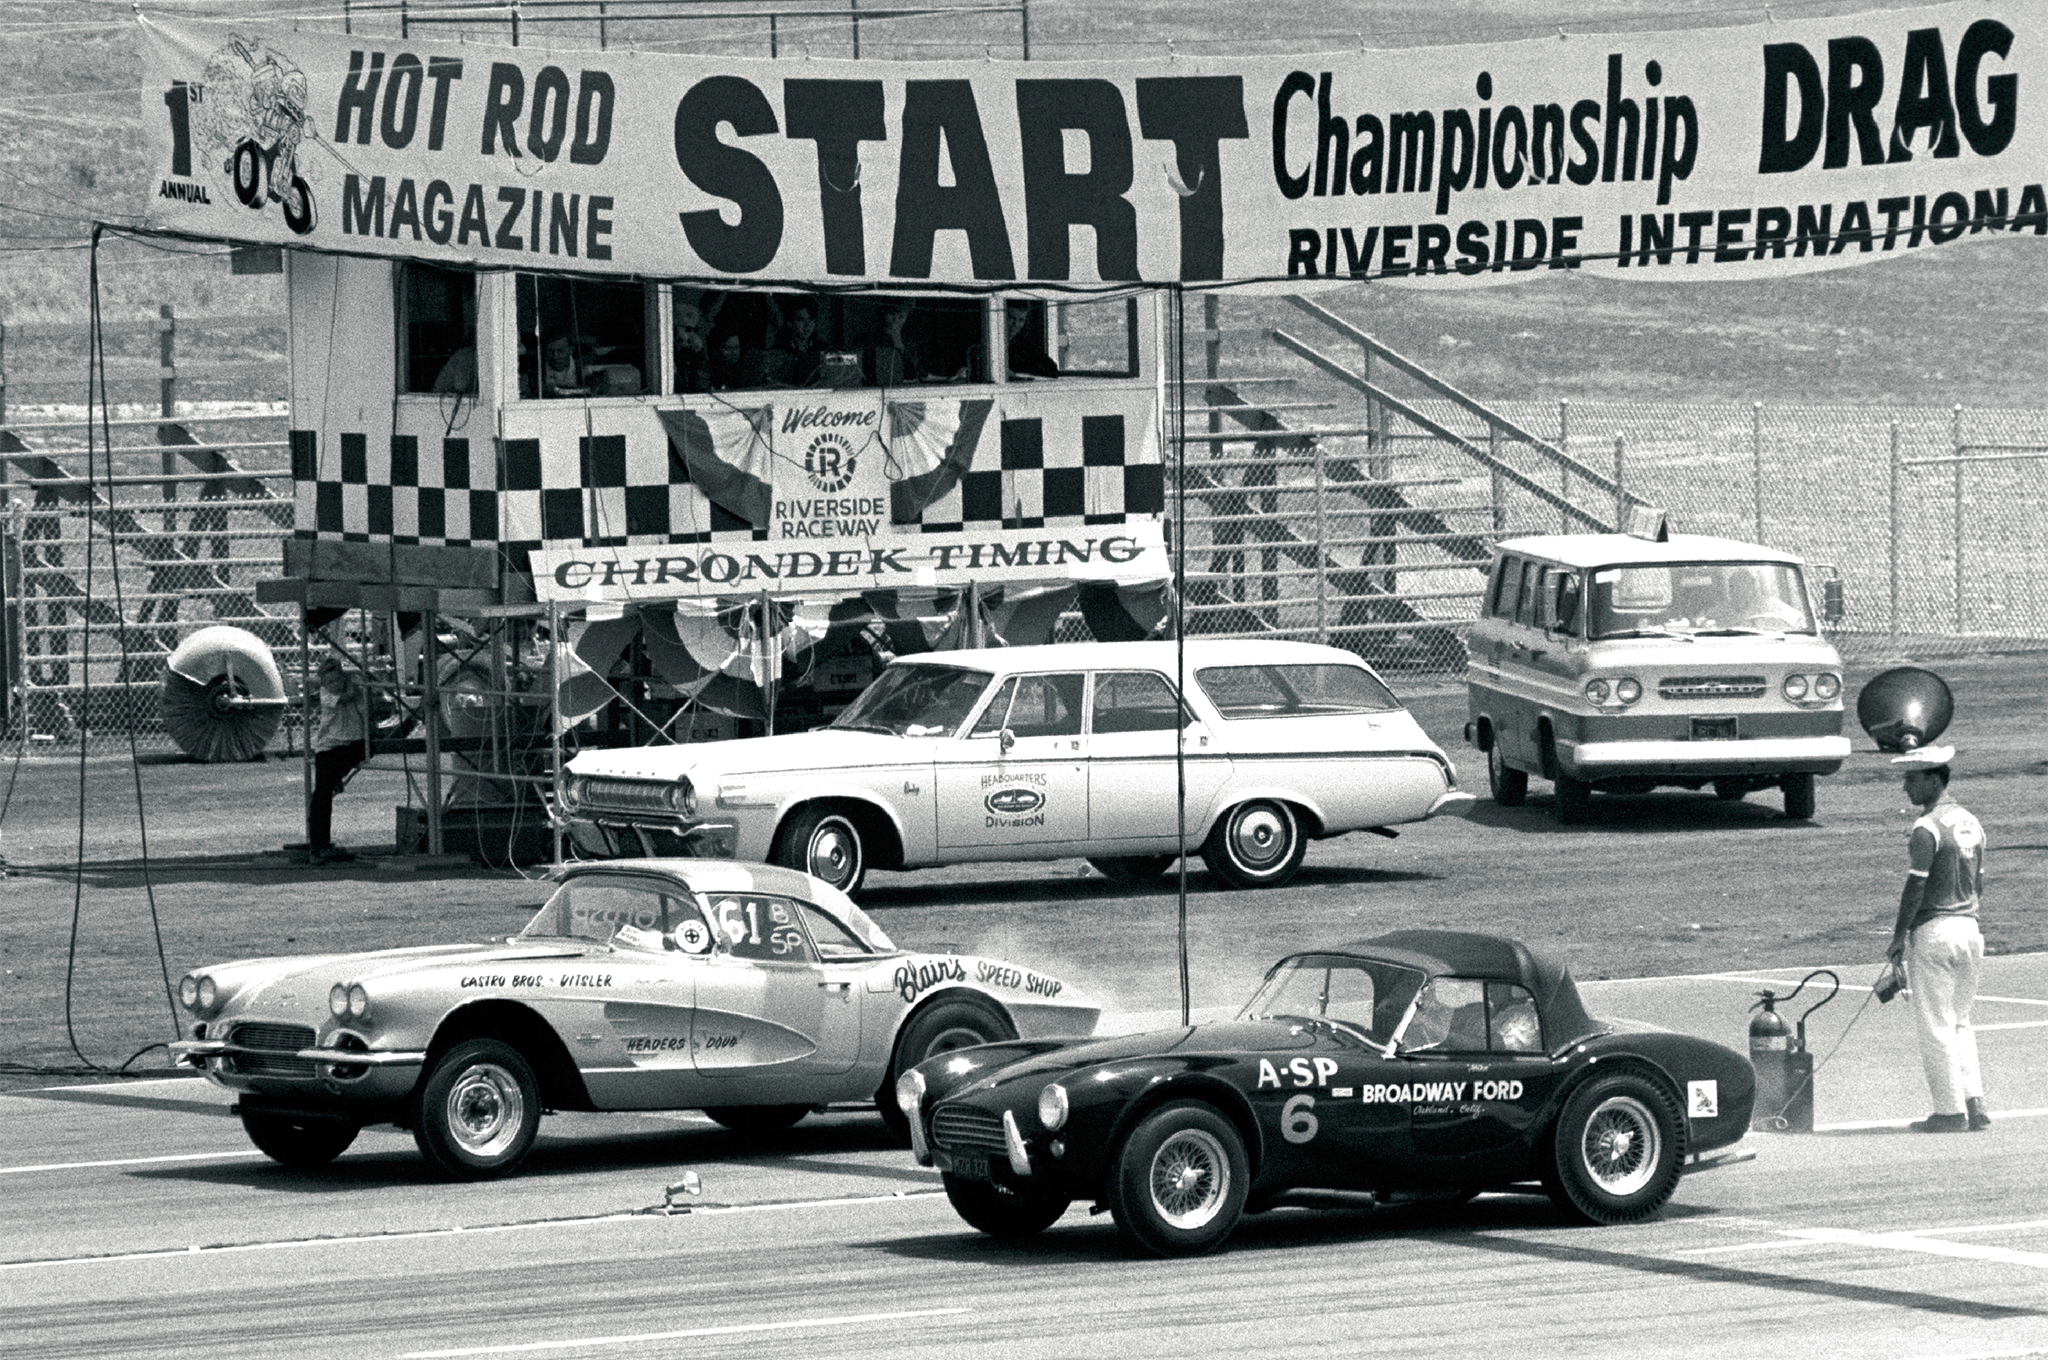 The 1961 Corvette seen at the HOT ROD Magazine Drags at Riverside in 1964 was Bovan's first real success in drag racing, scoring him a championship win in NHRA C/Stock in 1964, with partner Phil Castro.